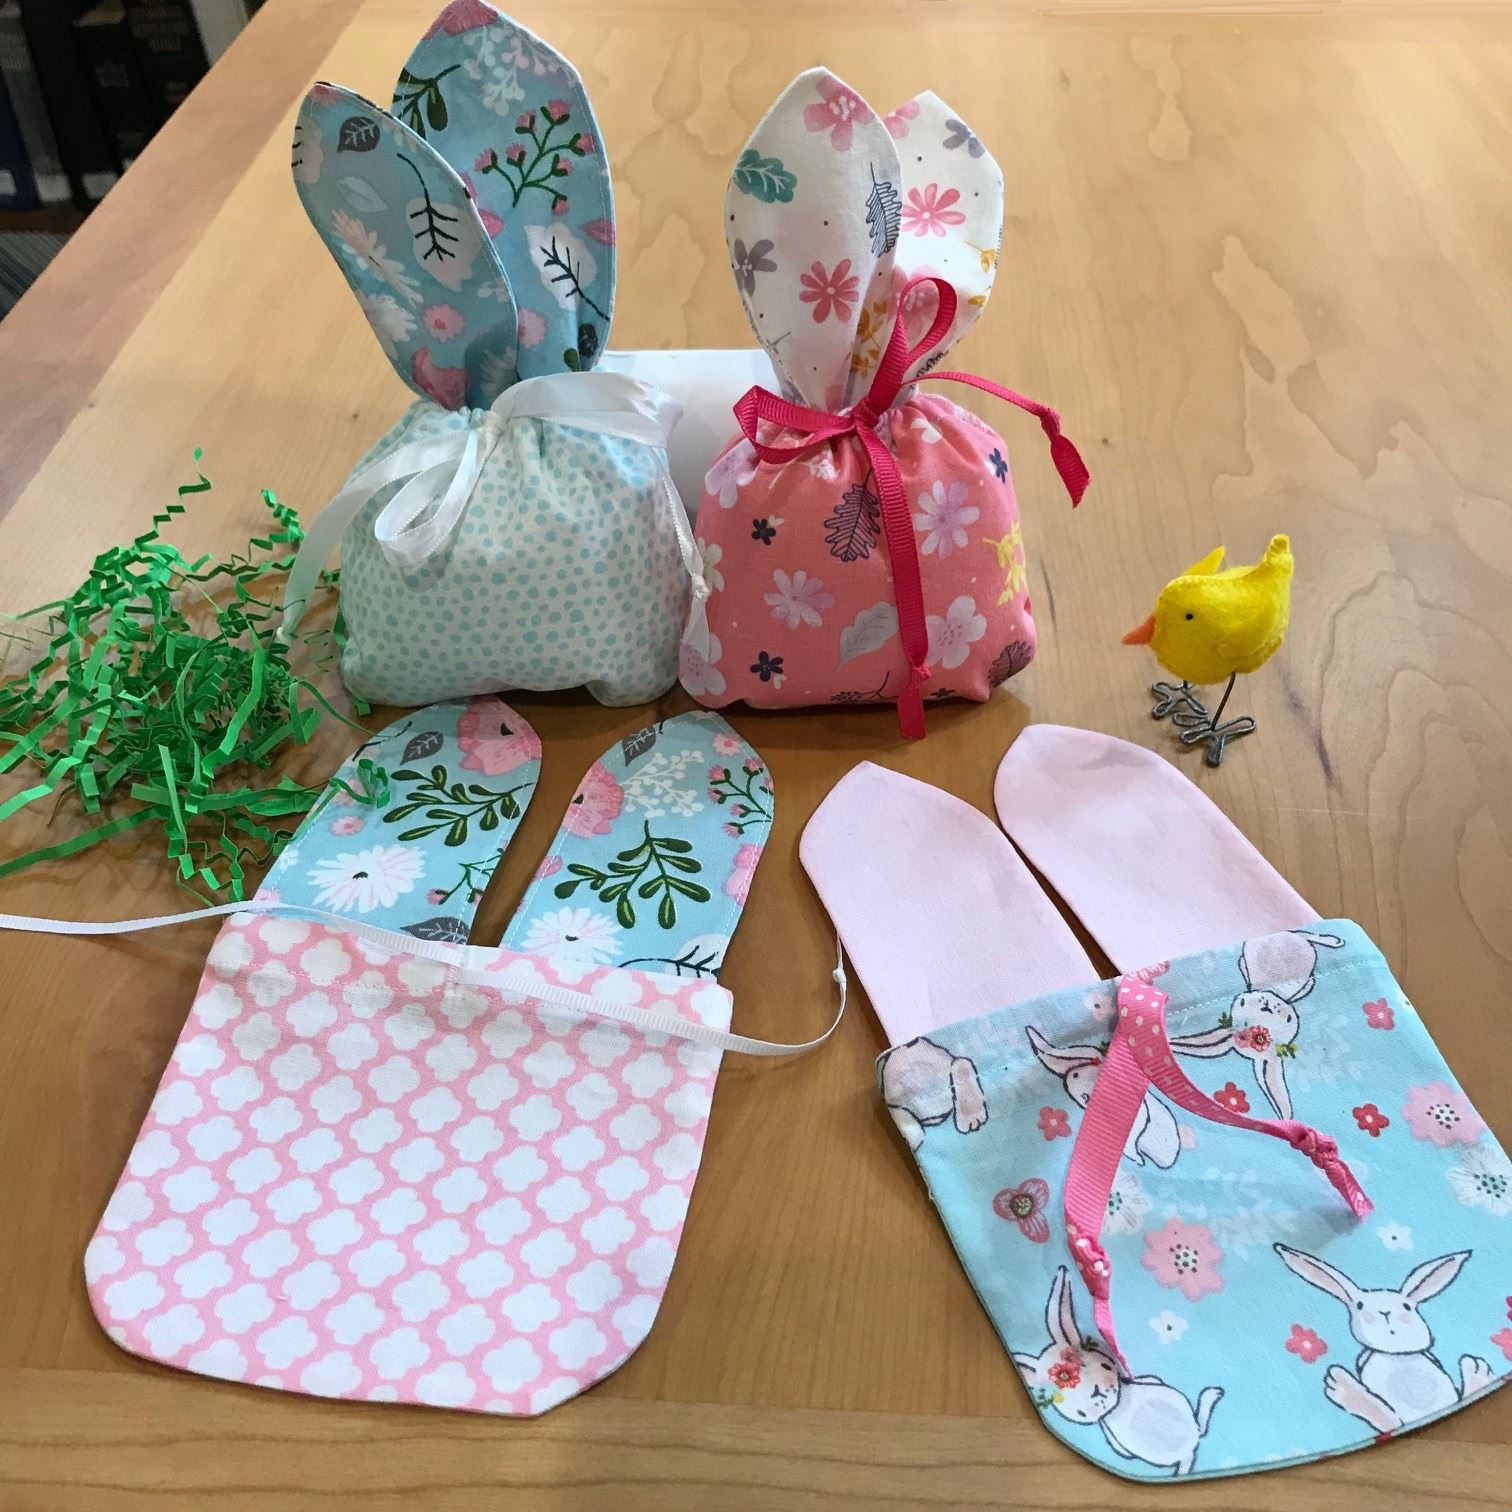 Bunny Bag Sewing Saturday March 16